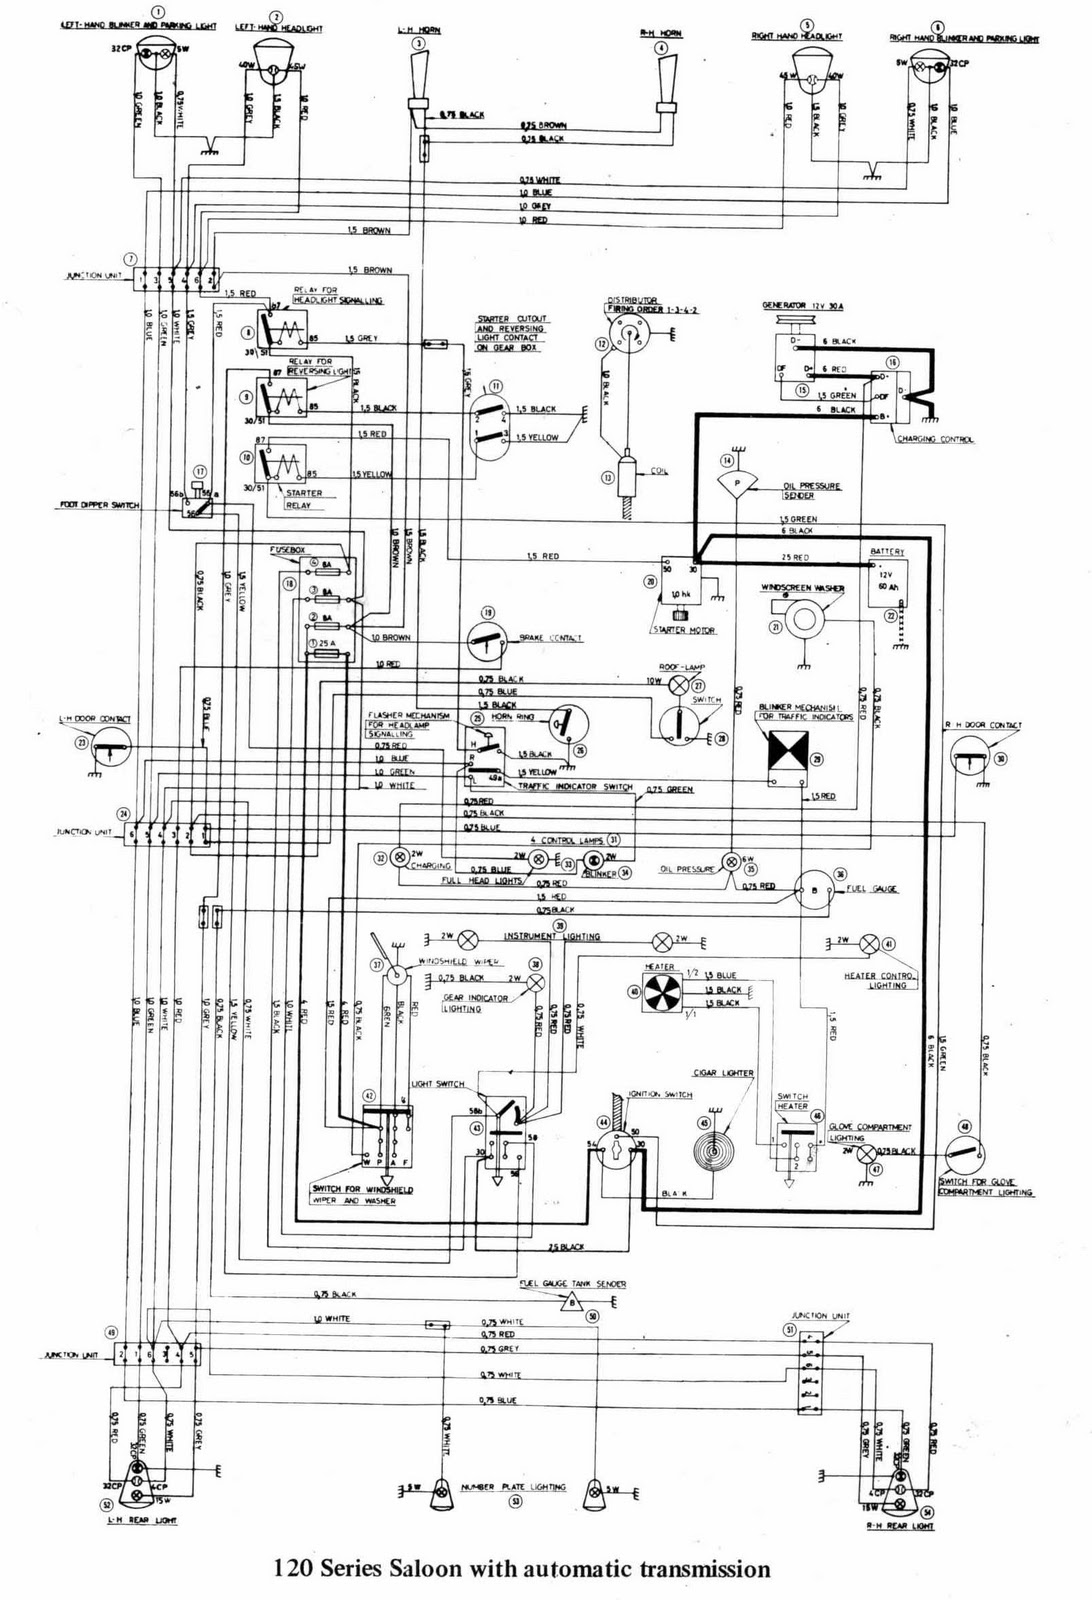 volvo truck wiring wiring diagram data todaysemi volvo truck ecu wiring wiring diagram experts volvo truck [ 1092 x 1600 Pixel ]